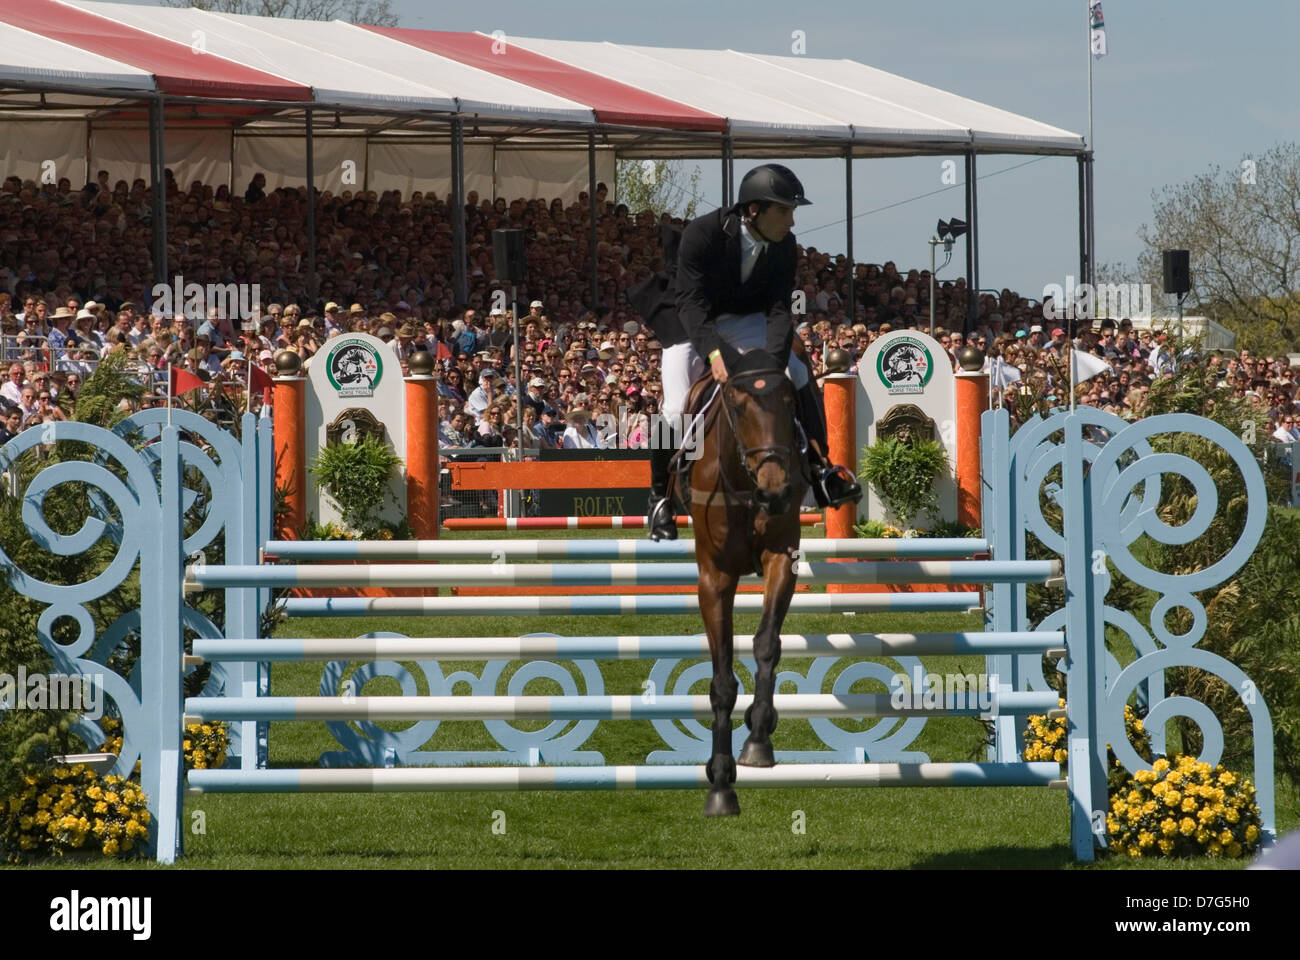 Badminton Horse Trials GLOUCESTERSHIRE REGNO UNITO. Speacators guardare lo show jumping nel main arena. Immagini Stock